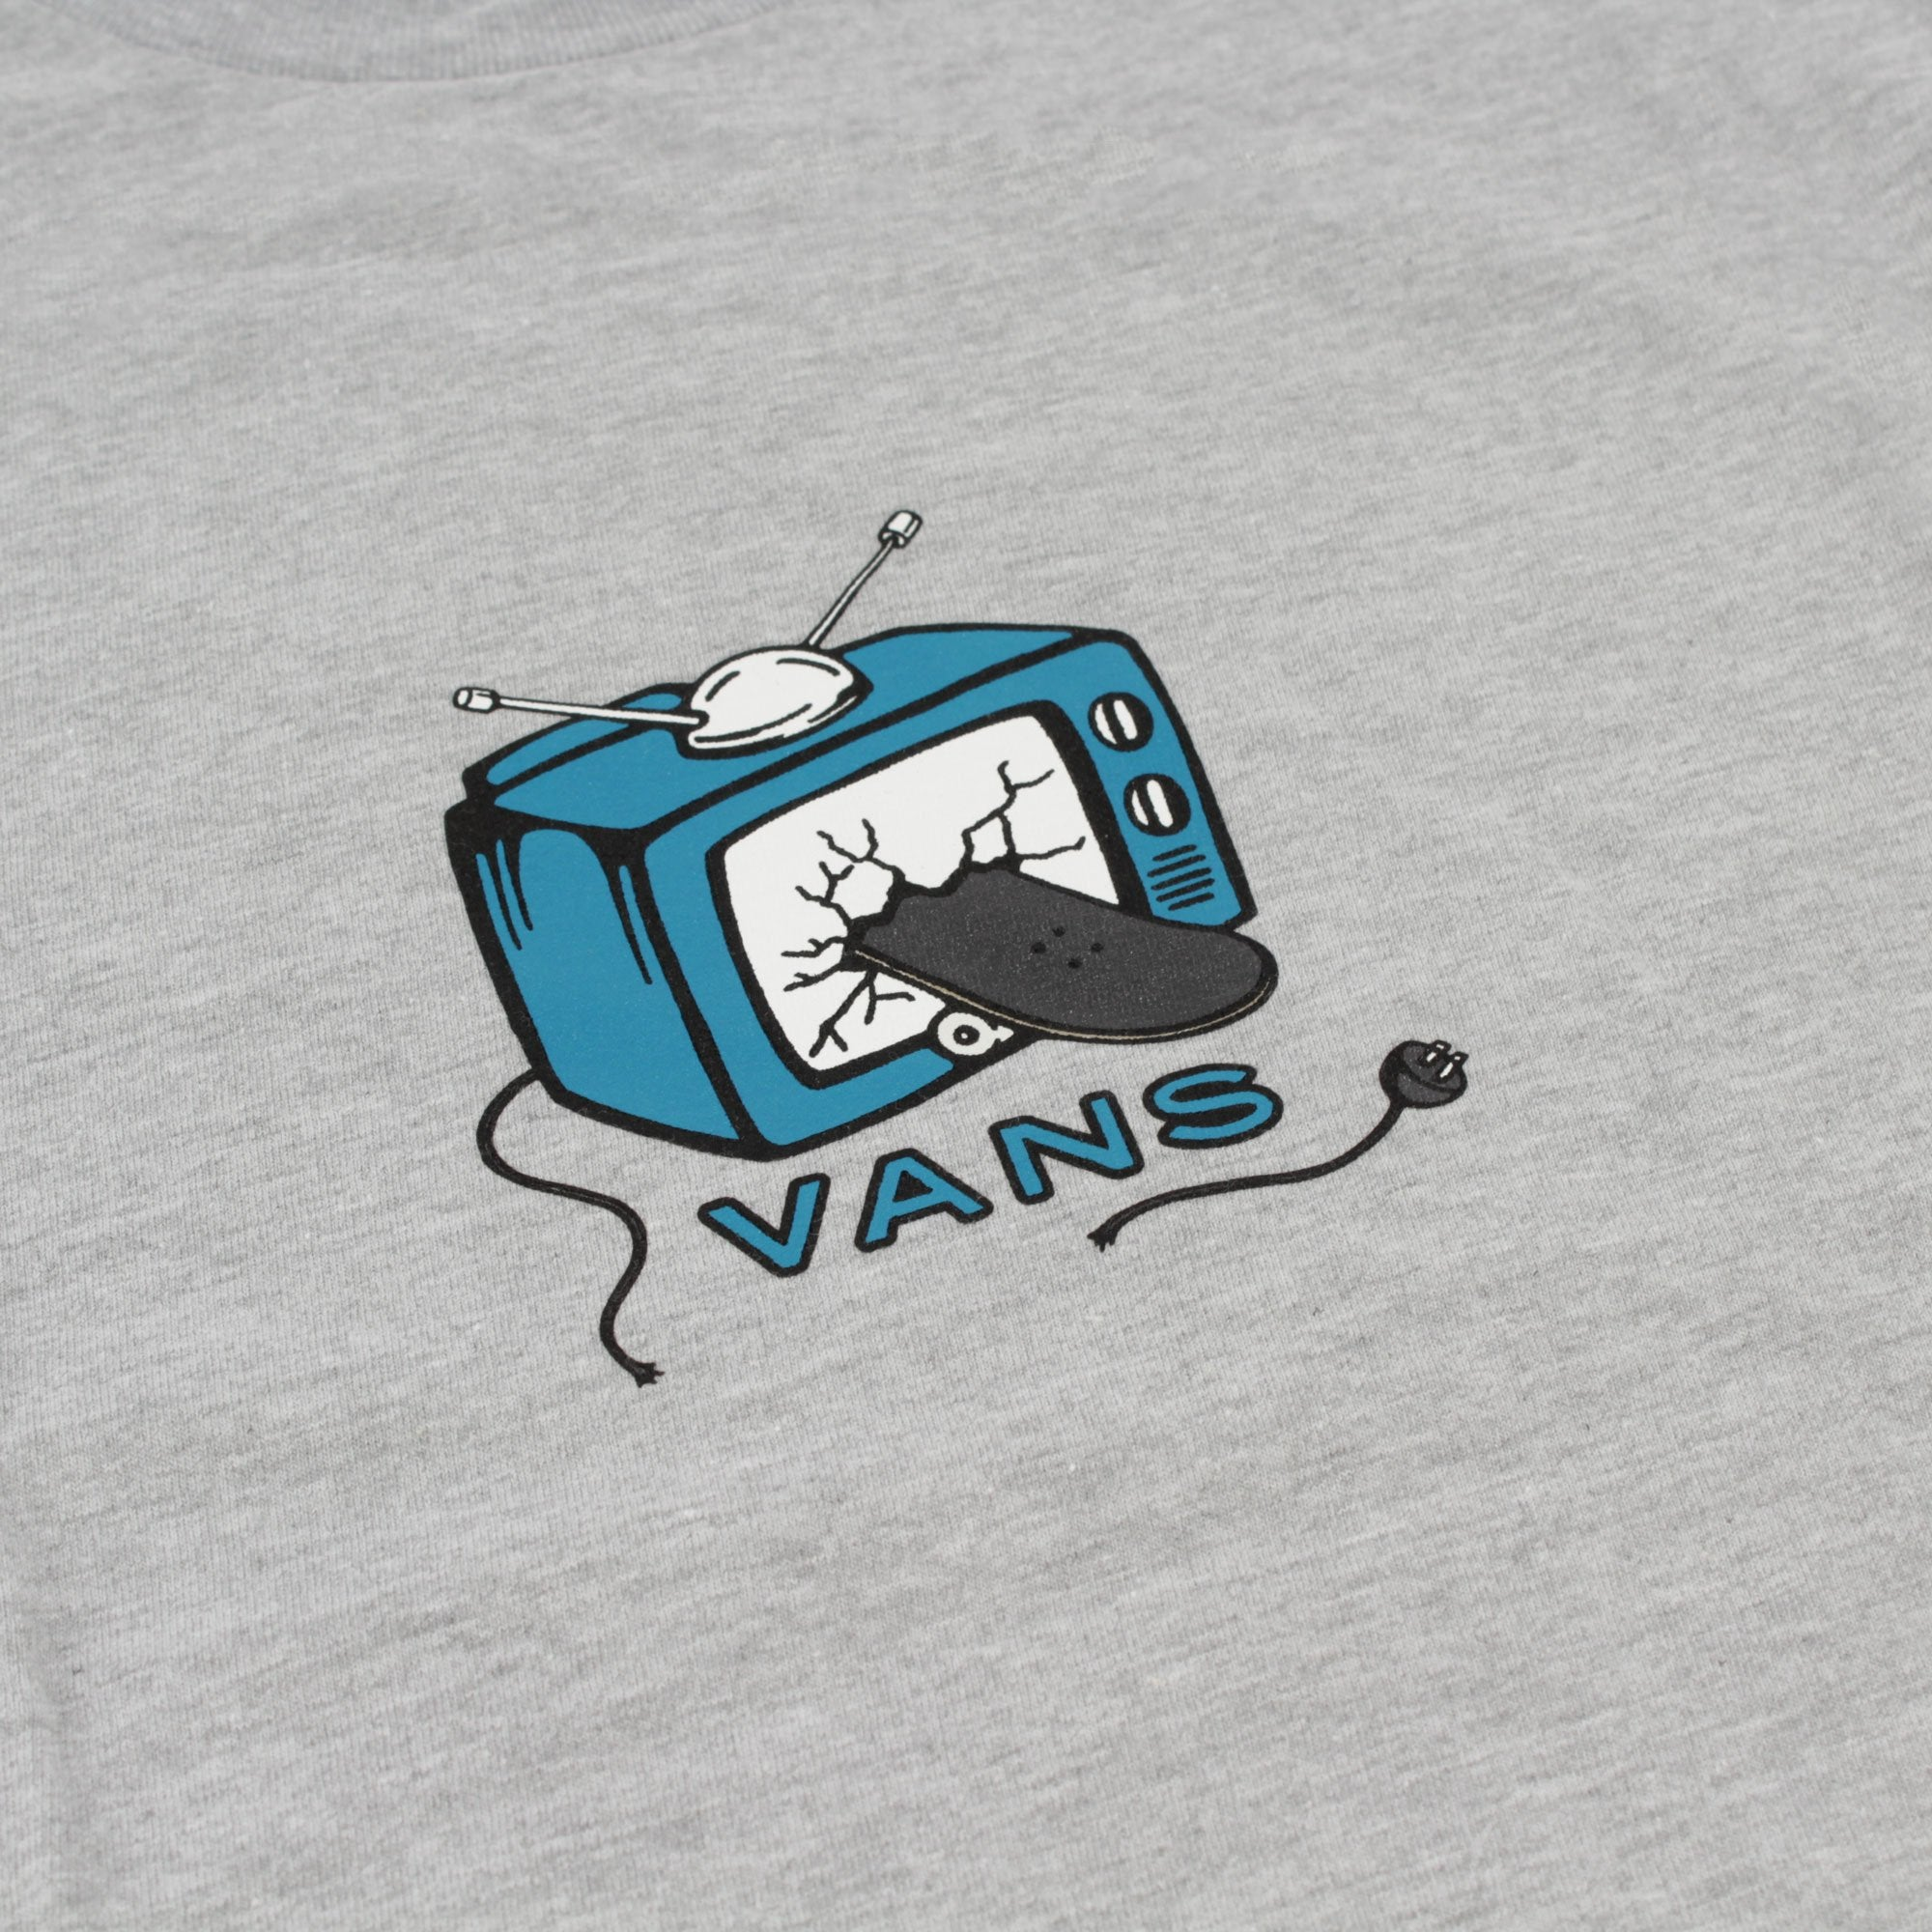 Vans Skate TV Tee Product Photo #2